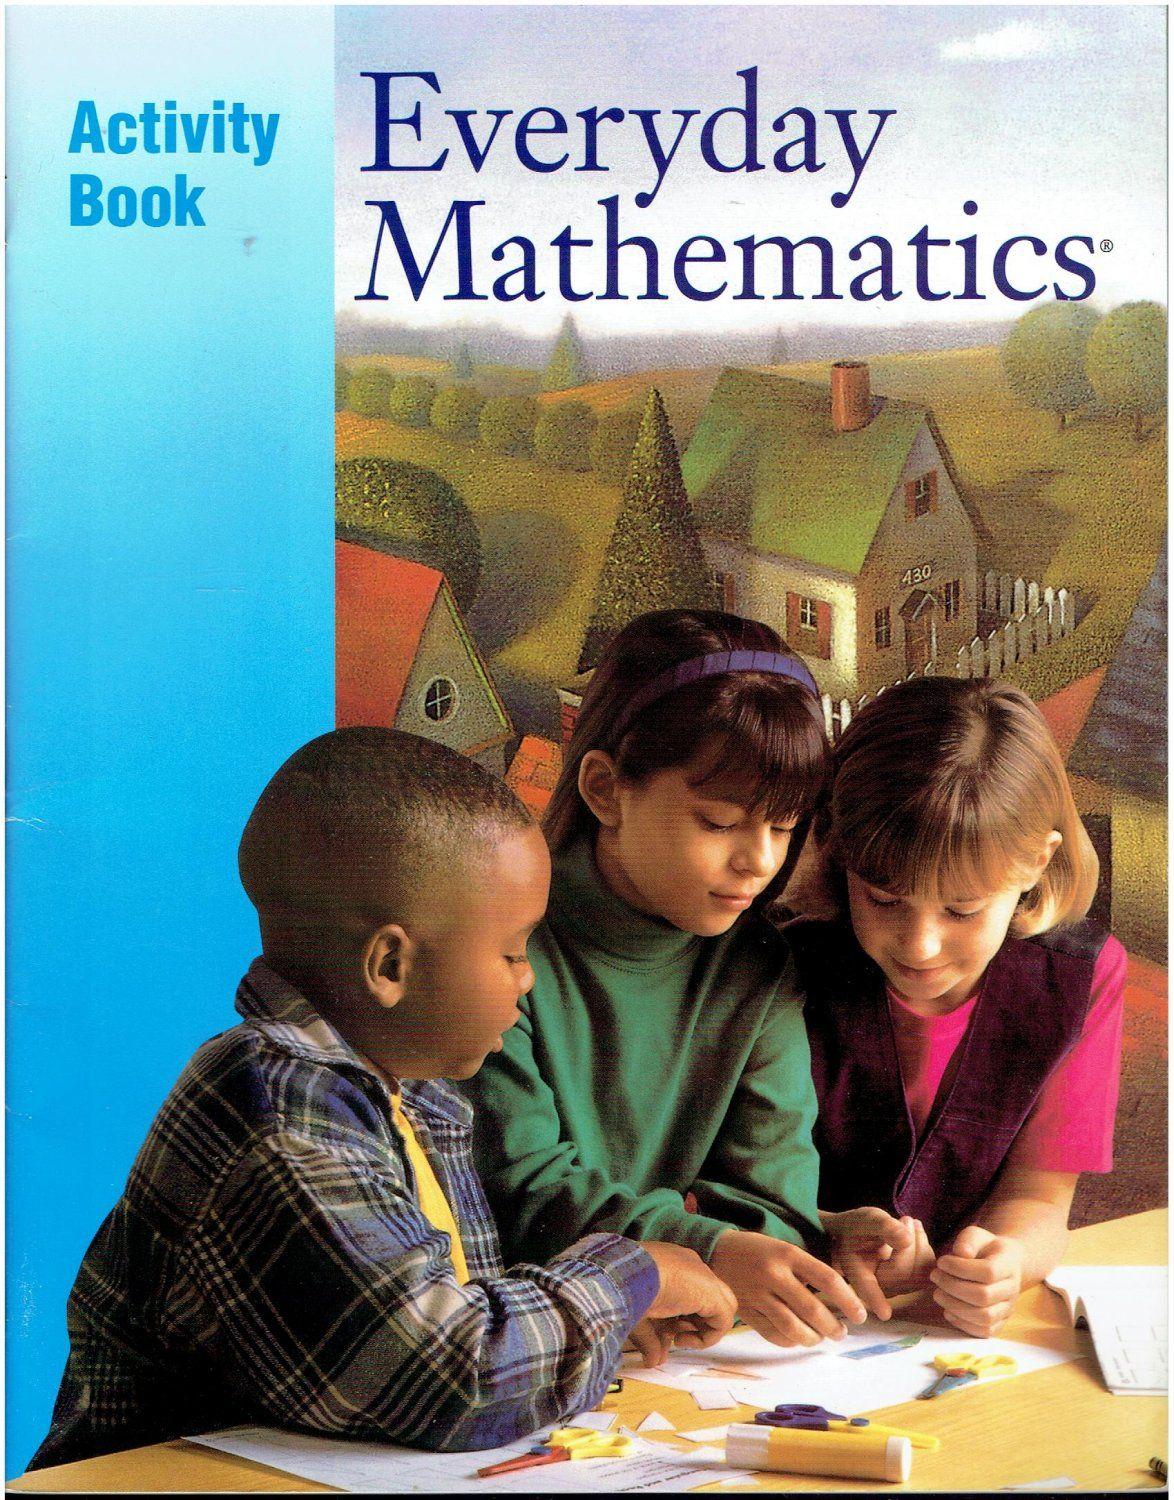 Everyday Mathematics 2 Activity Book 2nd grade math workbook isbn ...